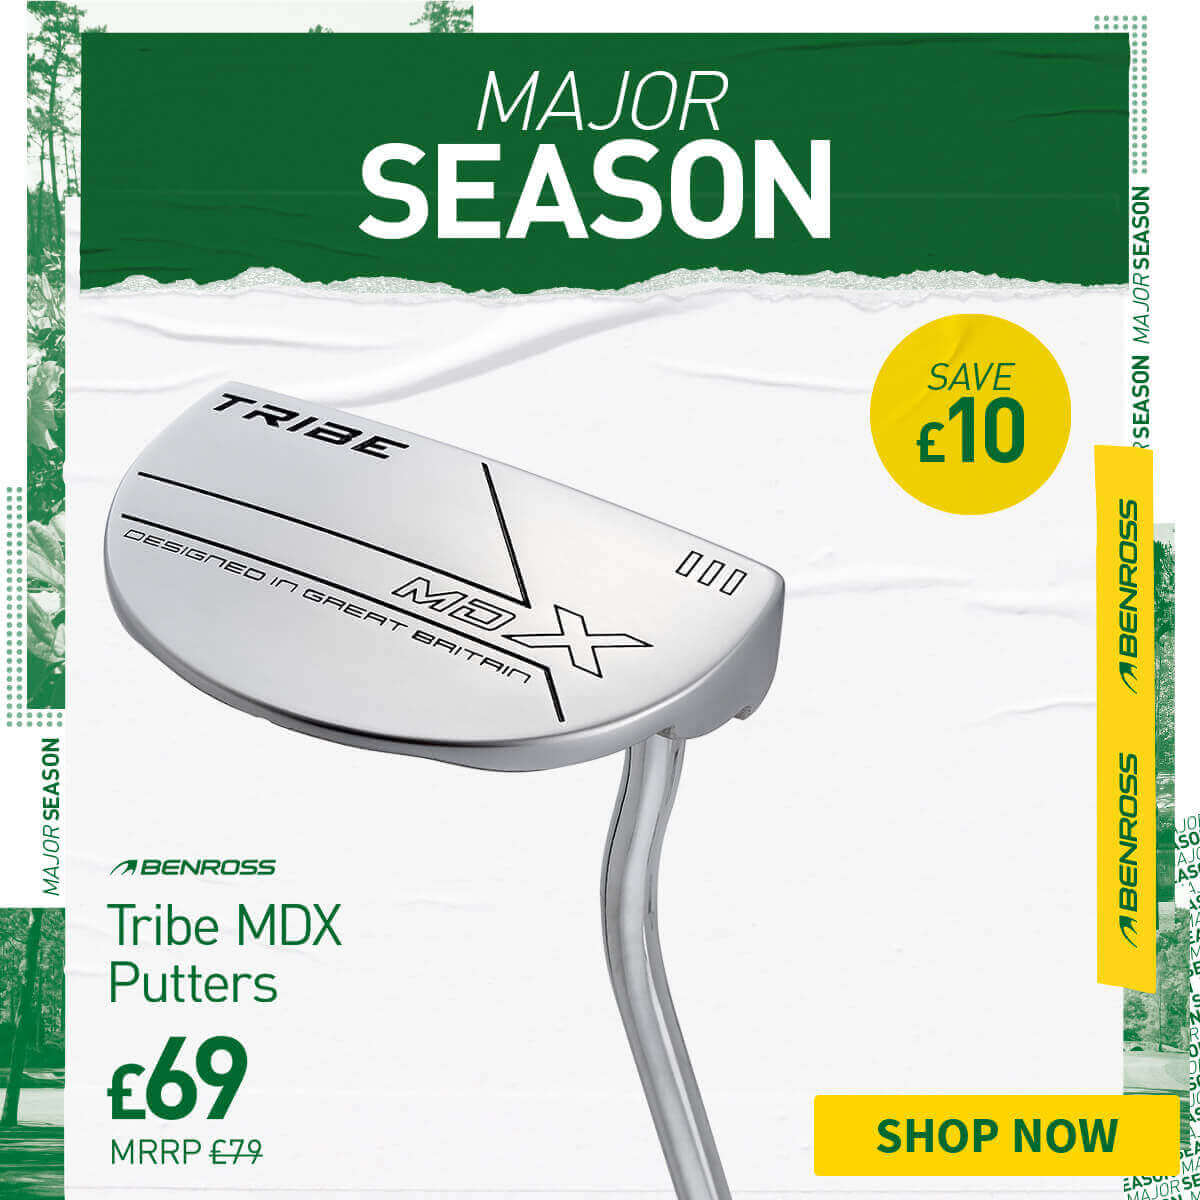 CALLAWAY WARBIRD PACKAGE SET - SAVE £50